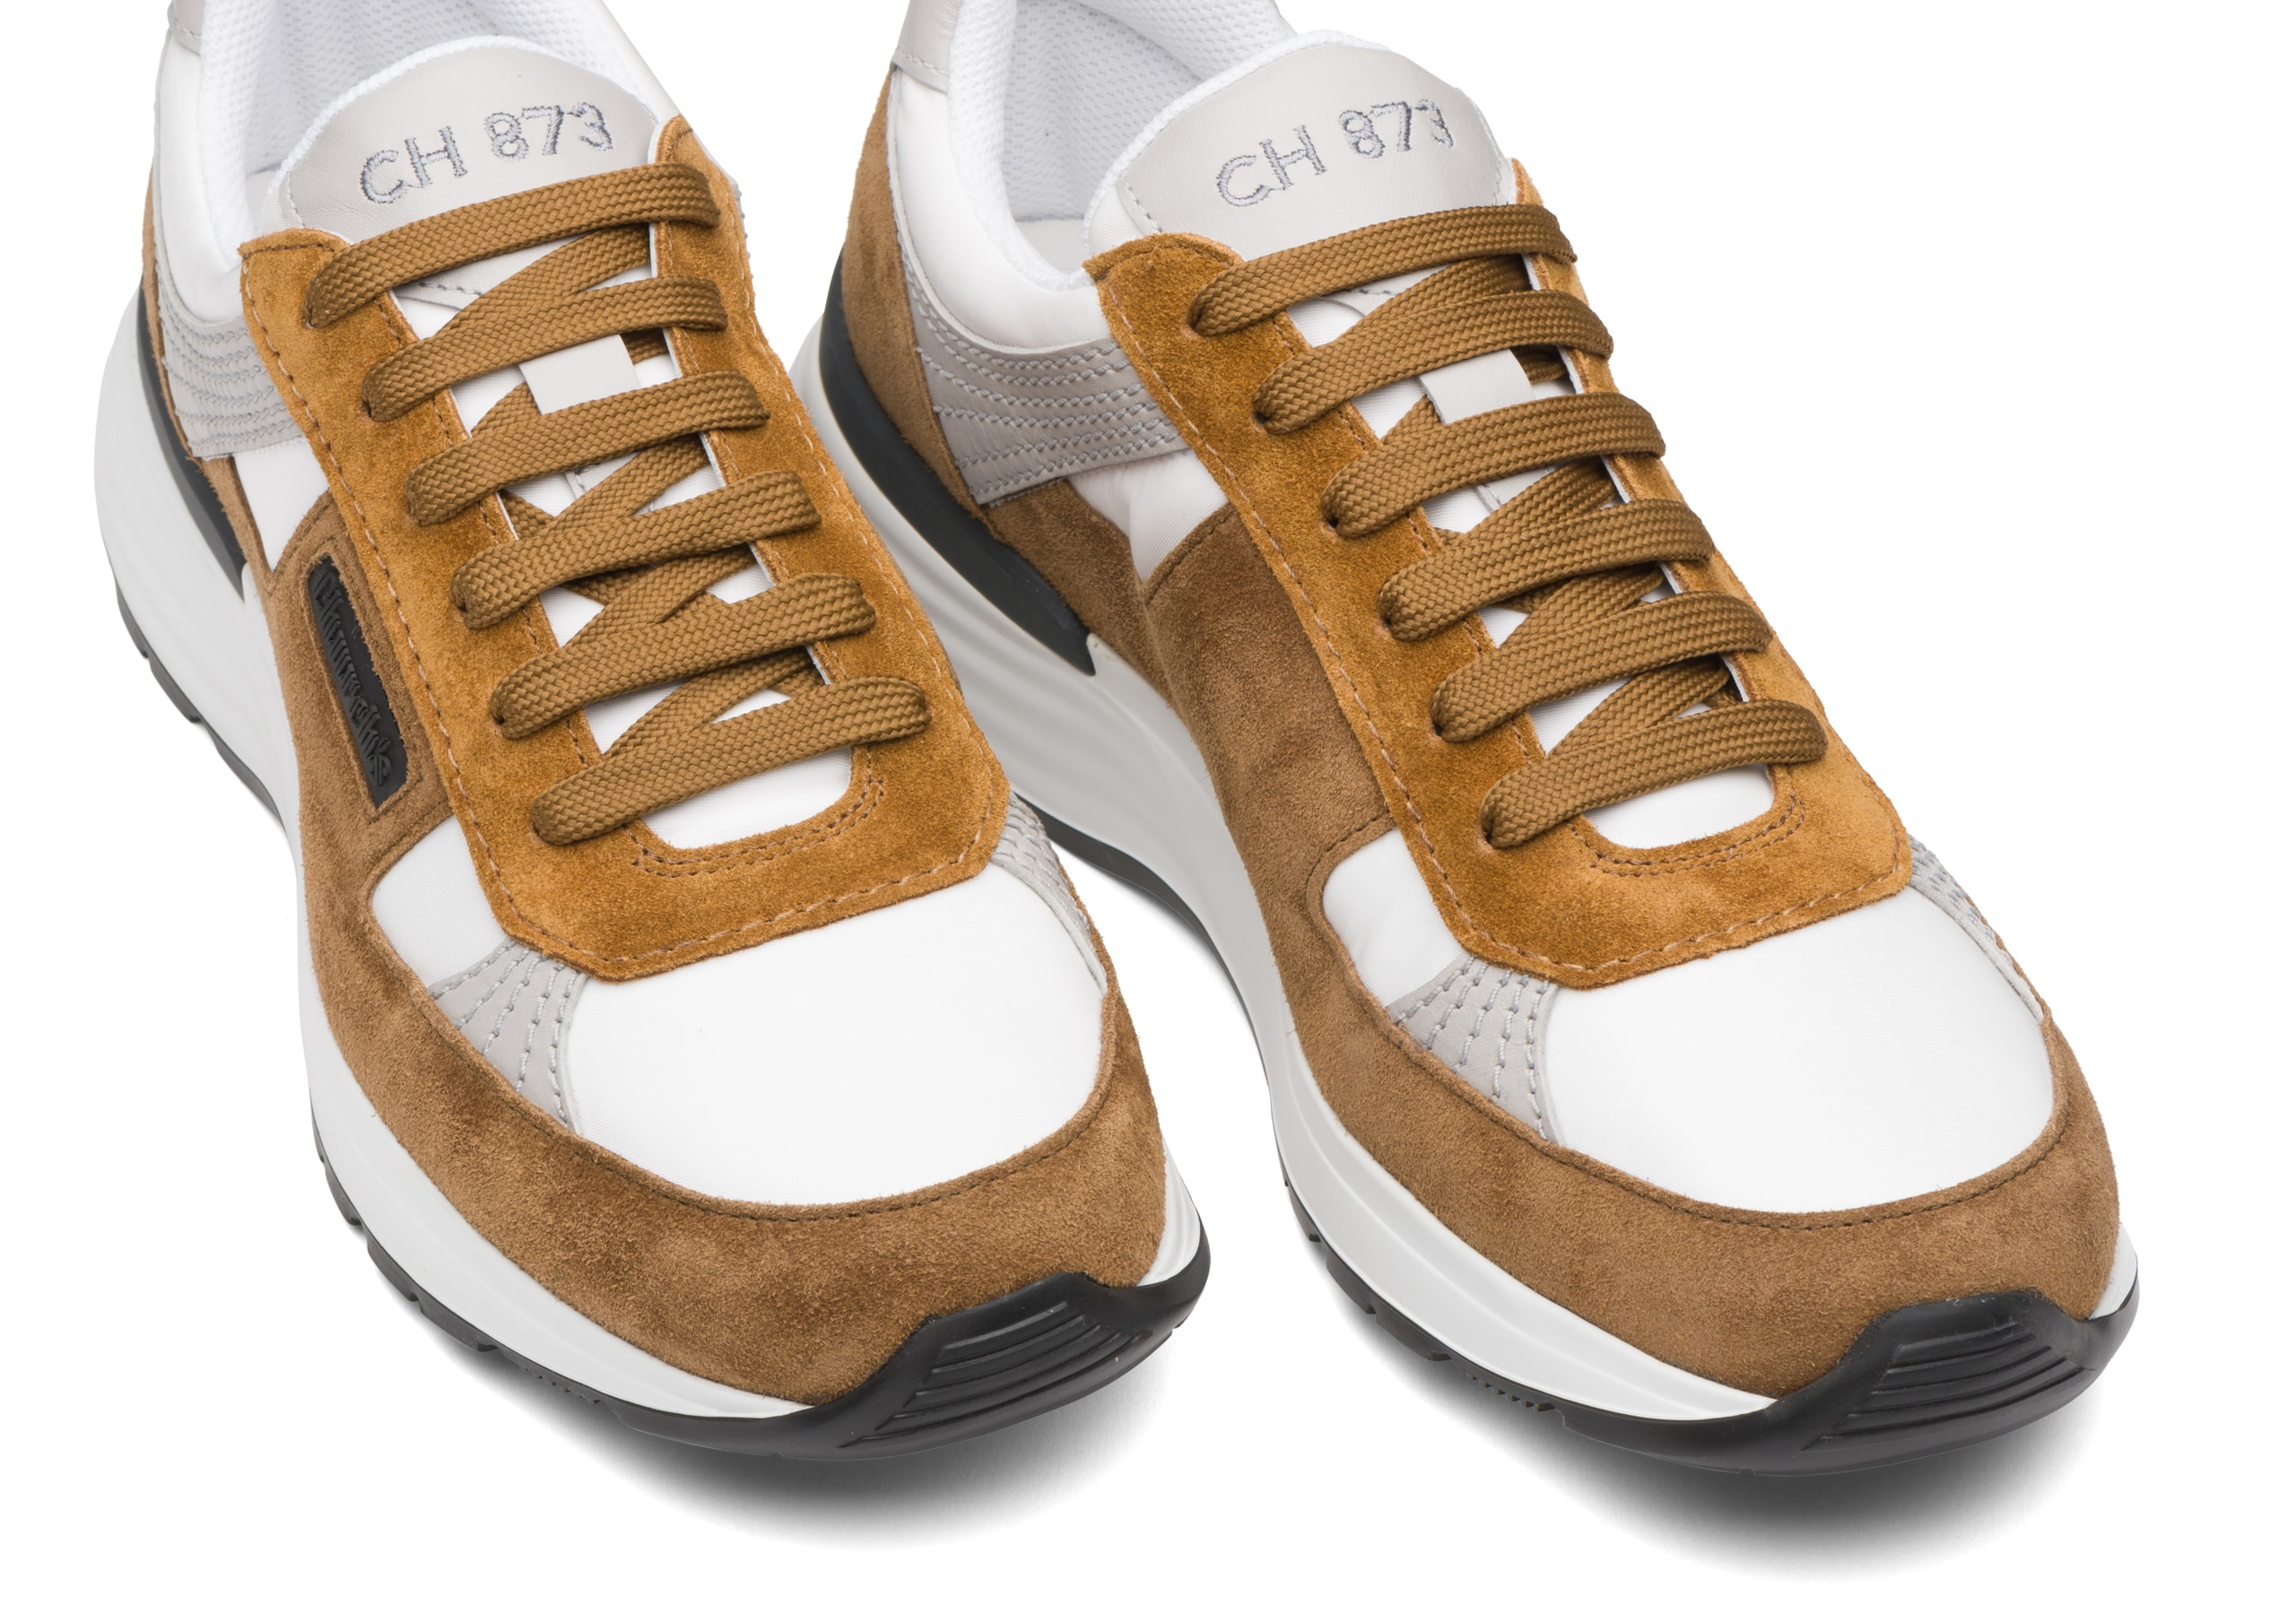 Ch873 Church's Suede and Gabardine Retro Sneaker Brown